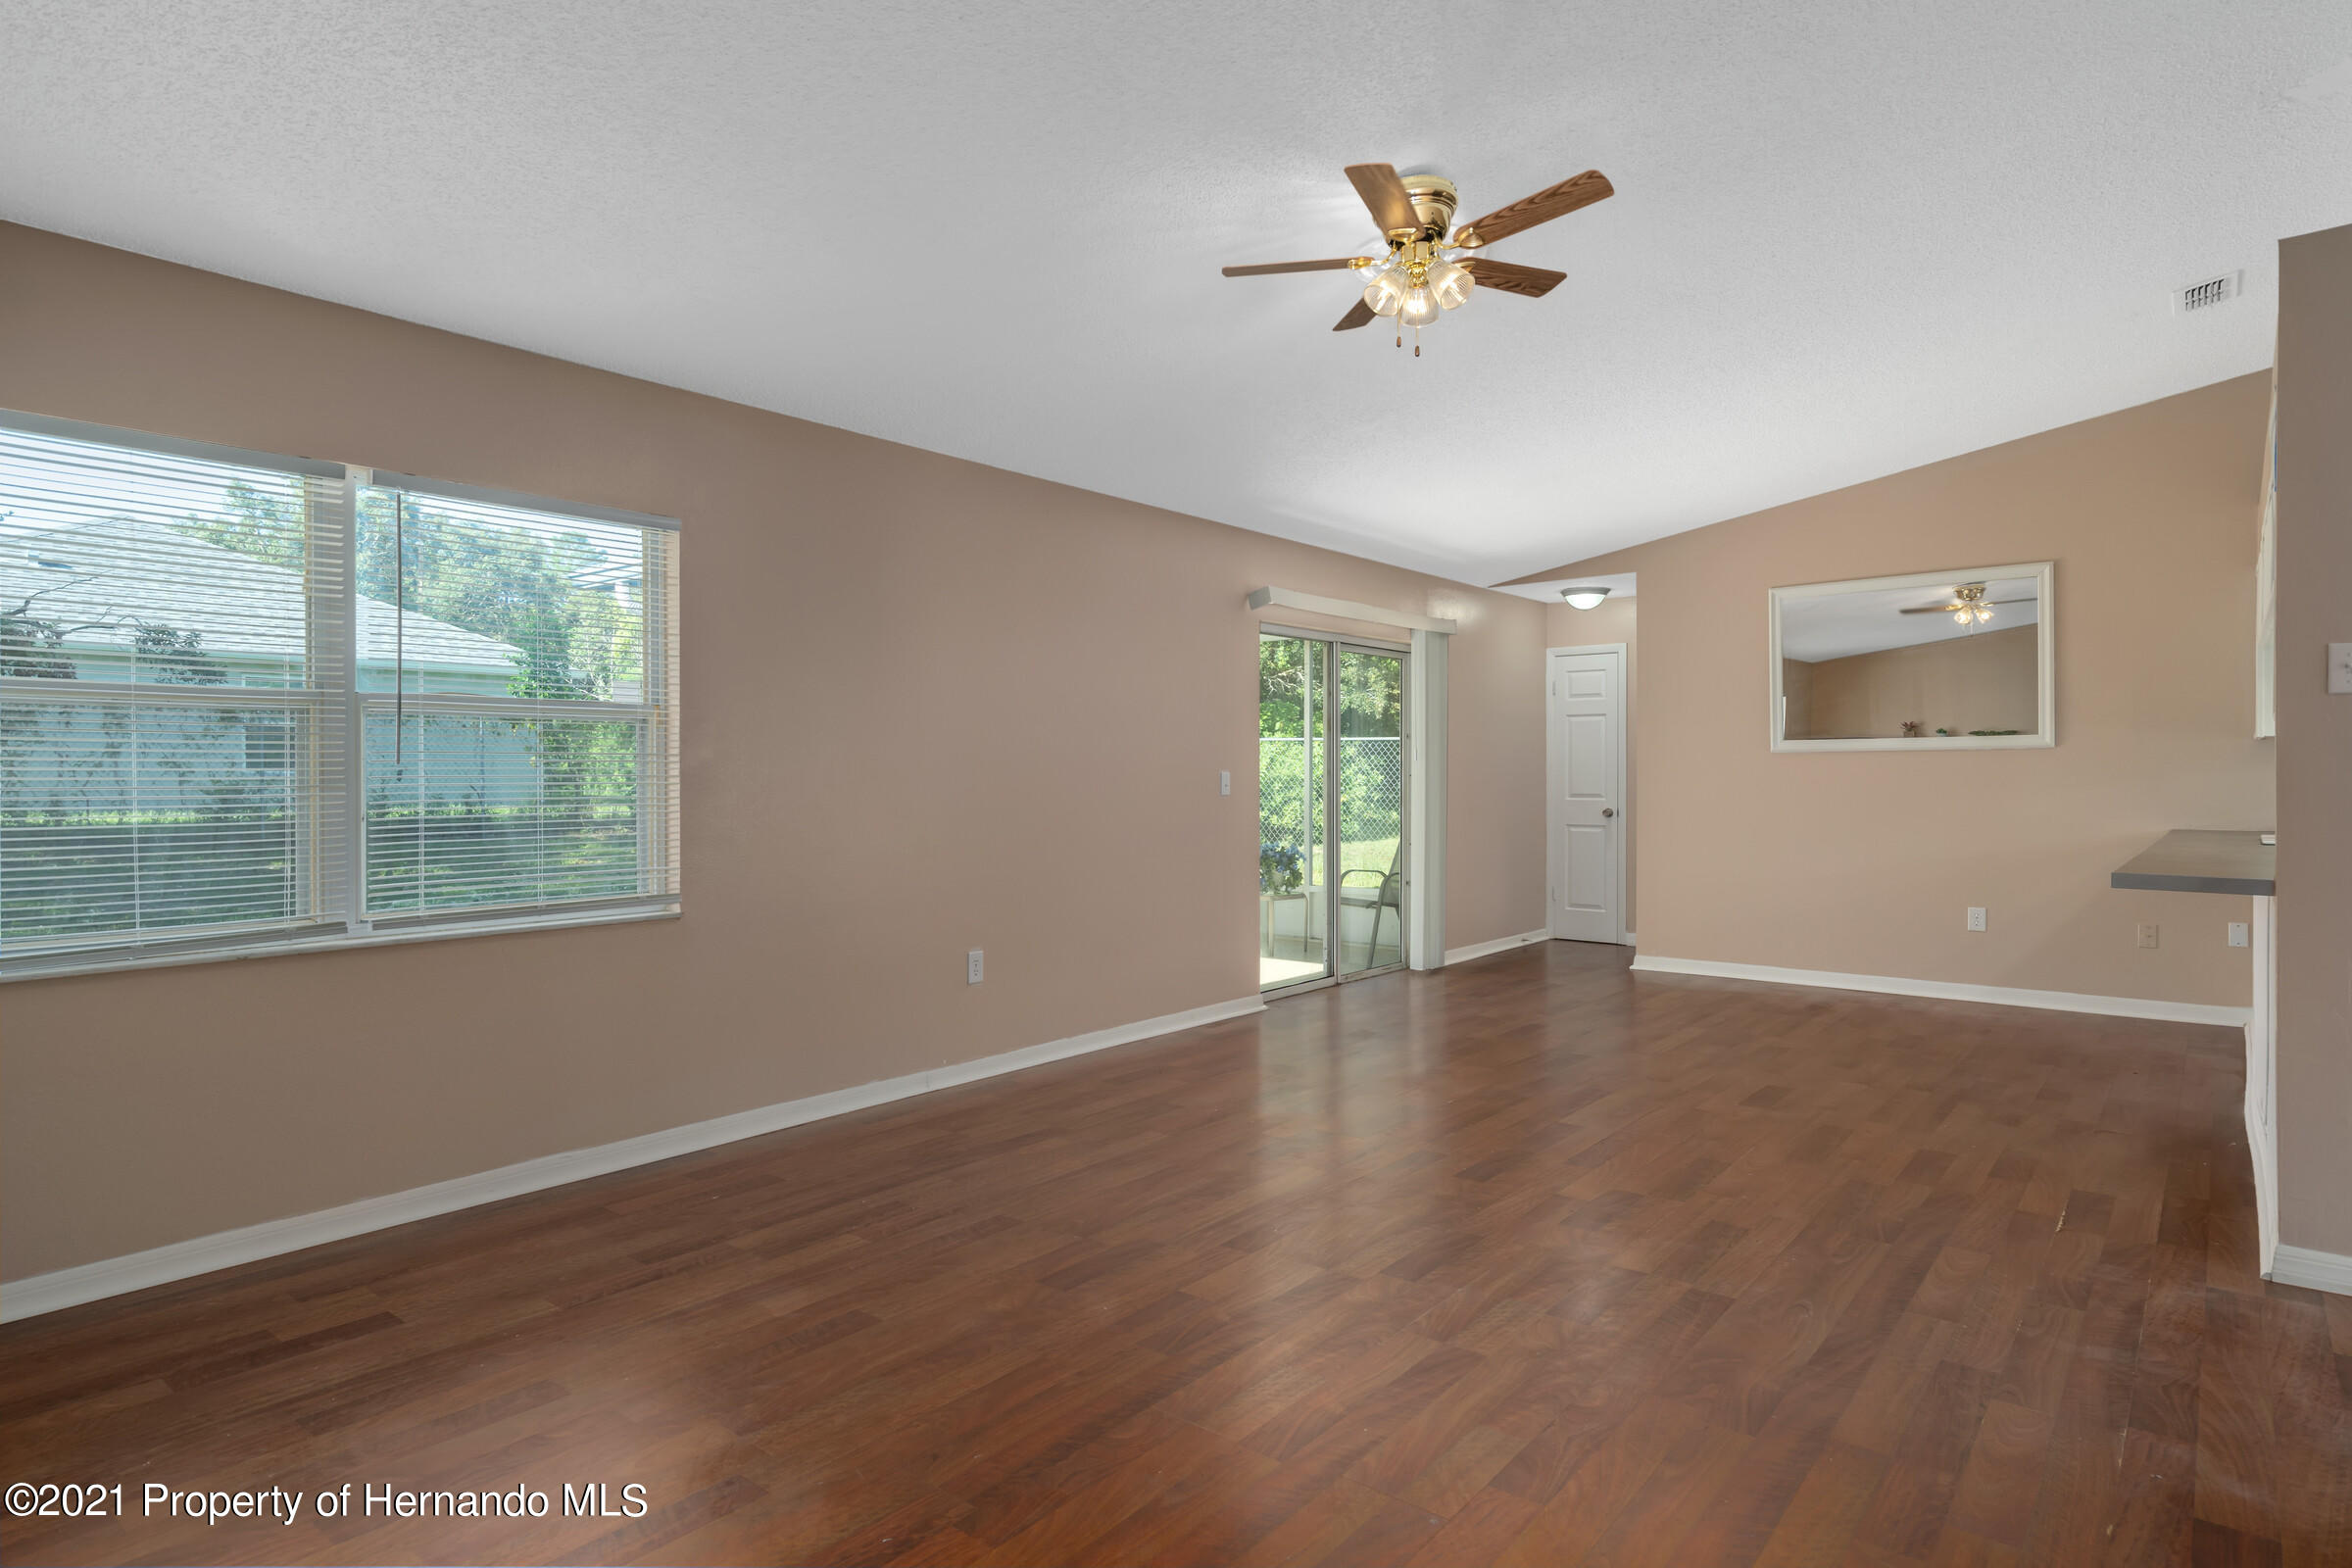 Image 9 of 26 For 10364 Clarion Street